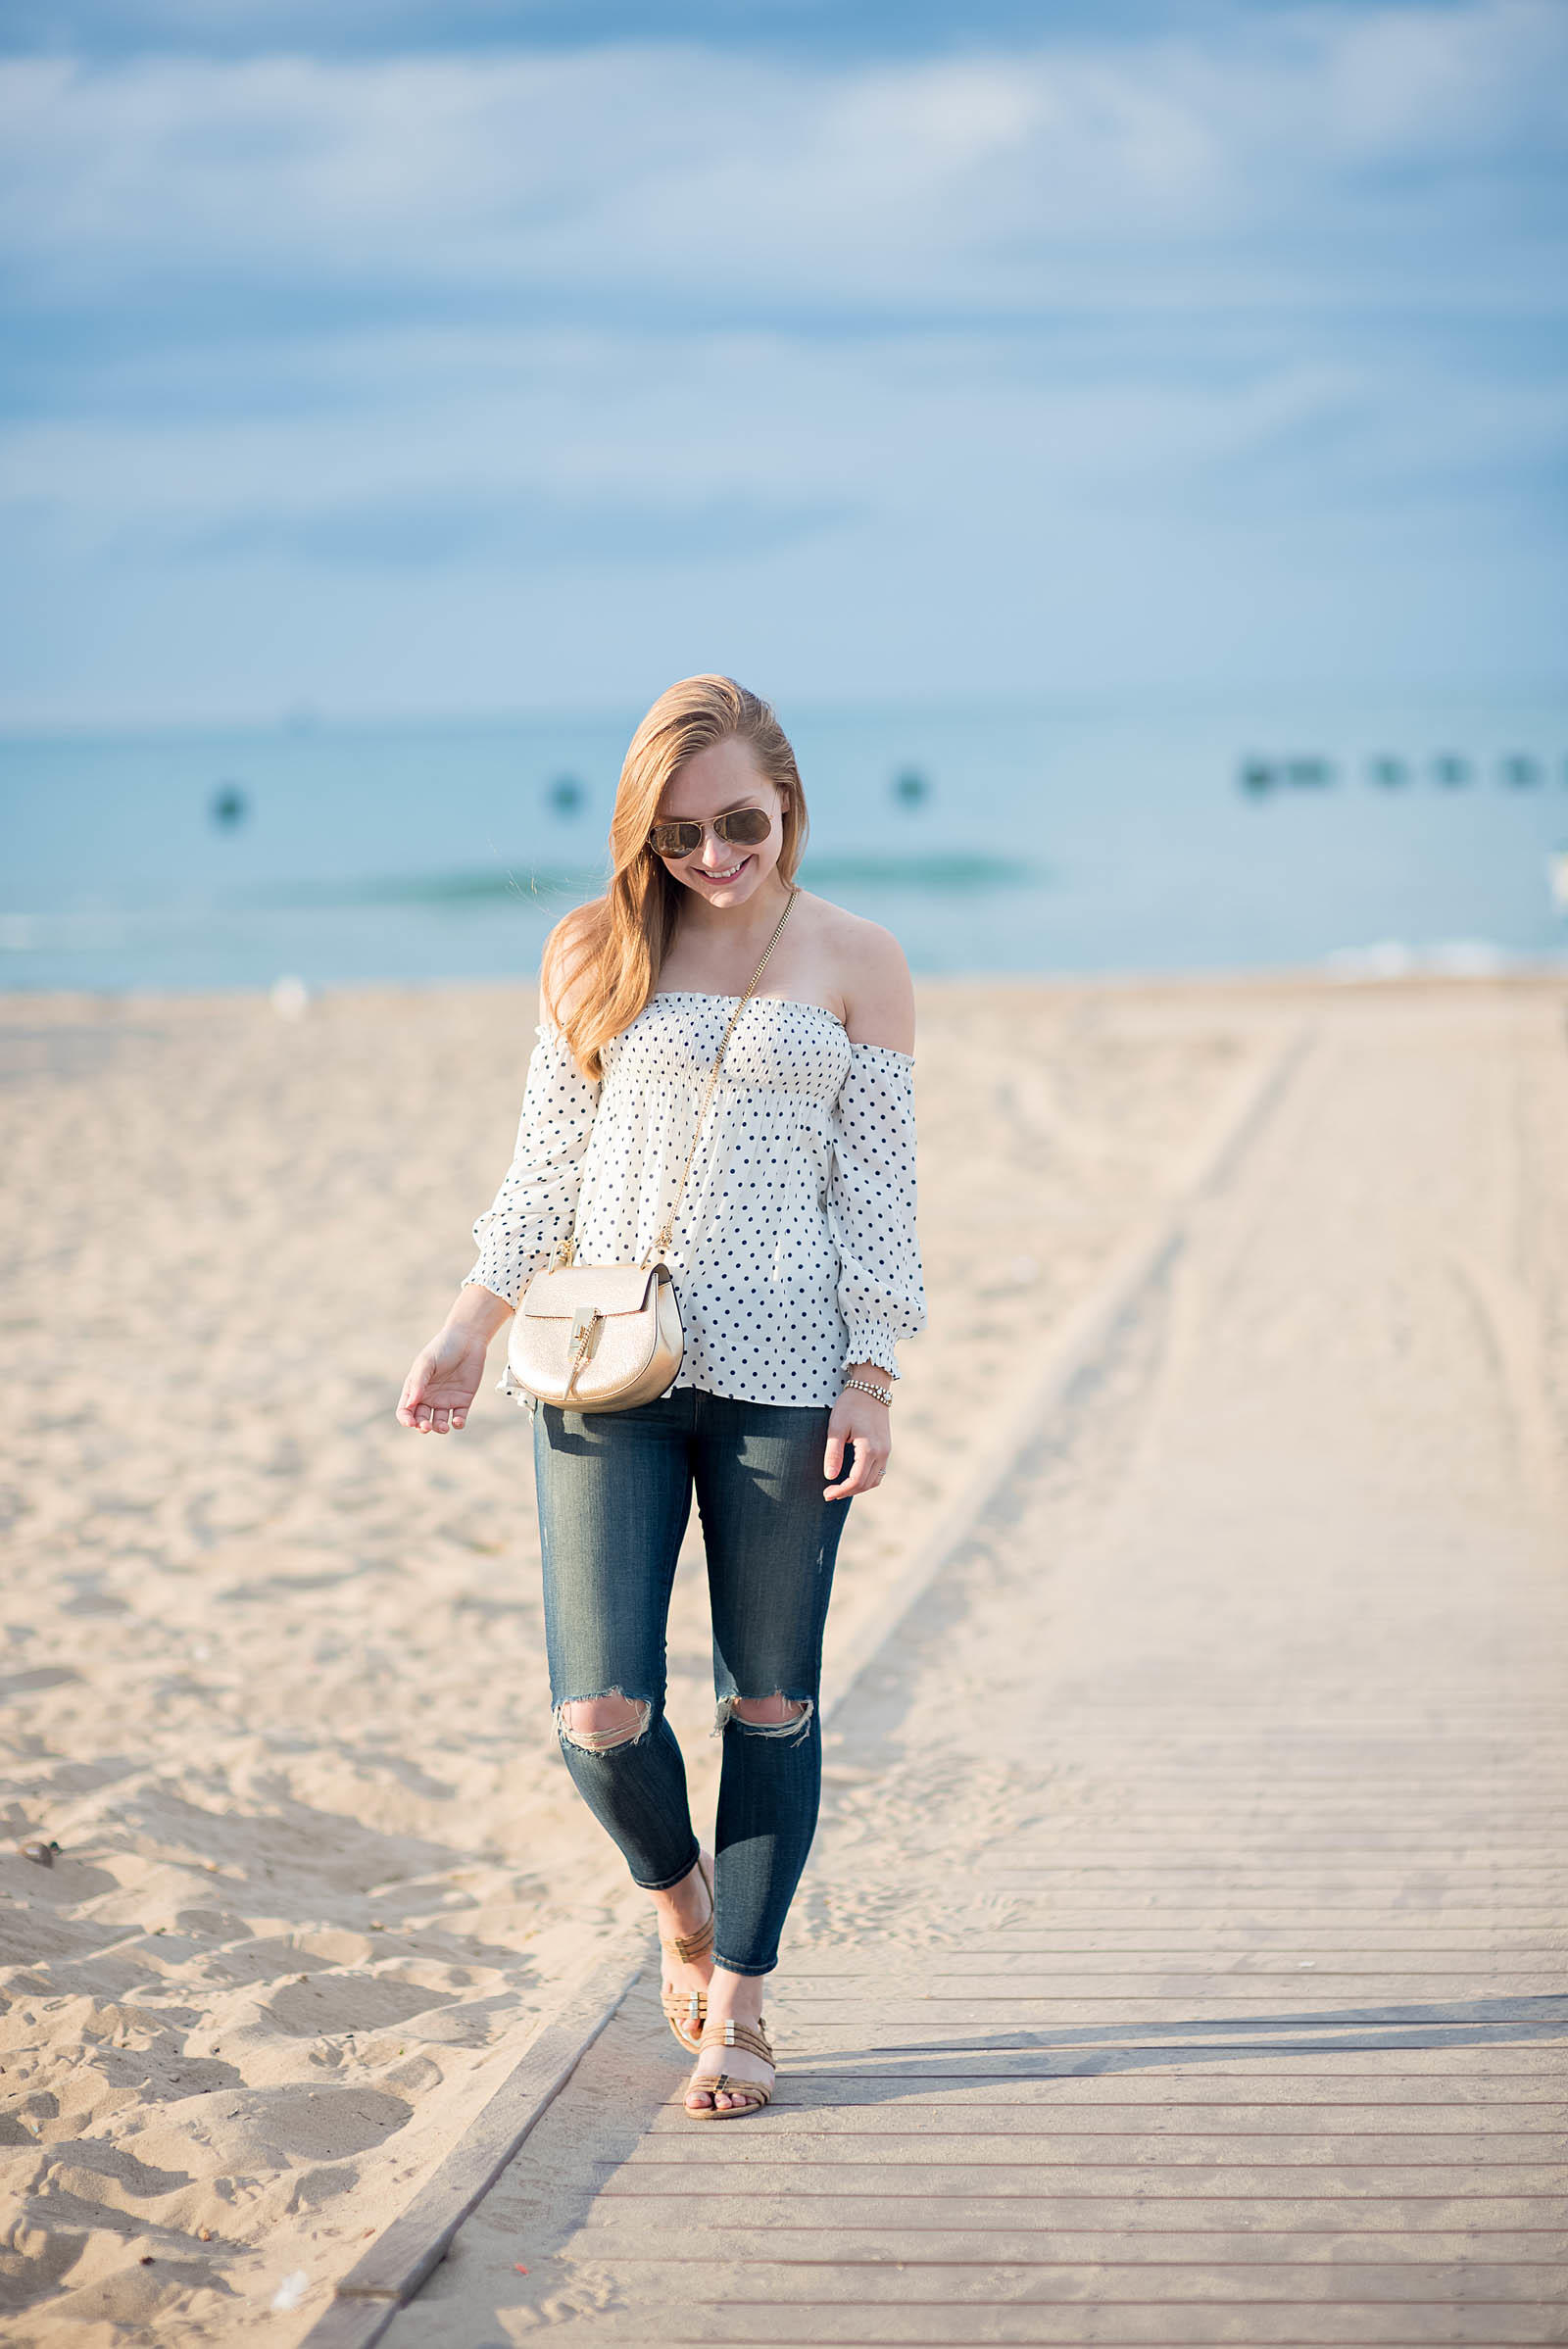 Summer Jeans Beach Outfit Chloe Drew